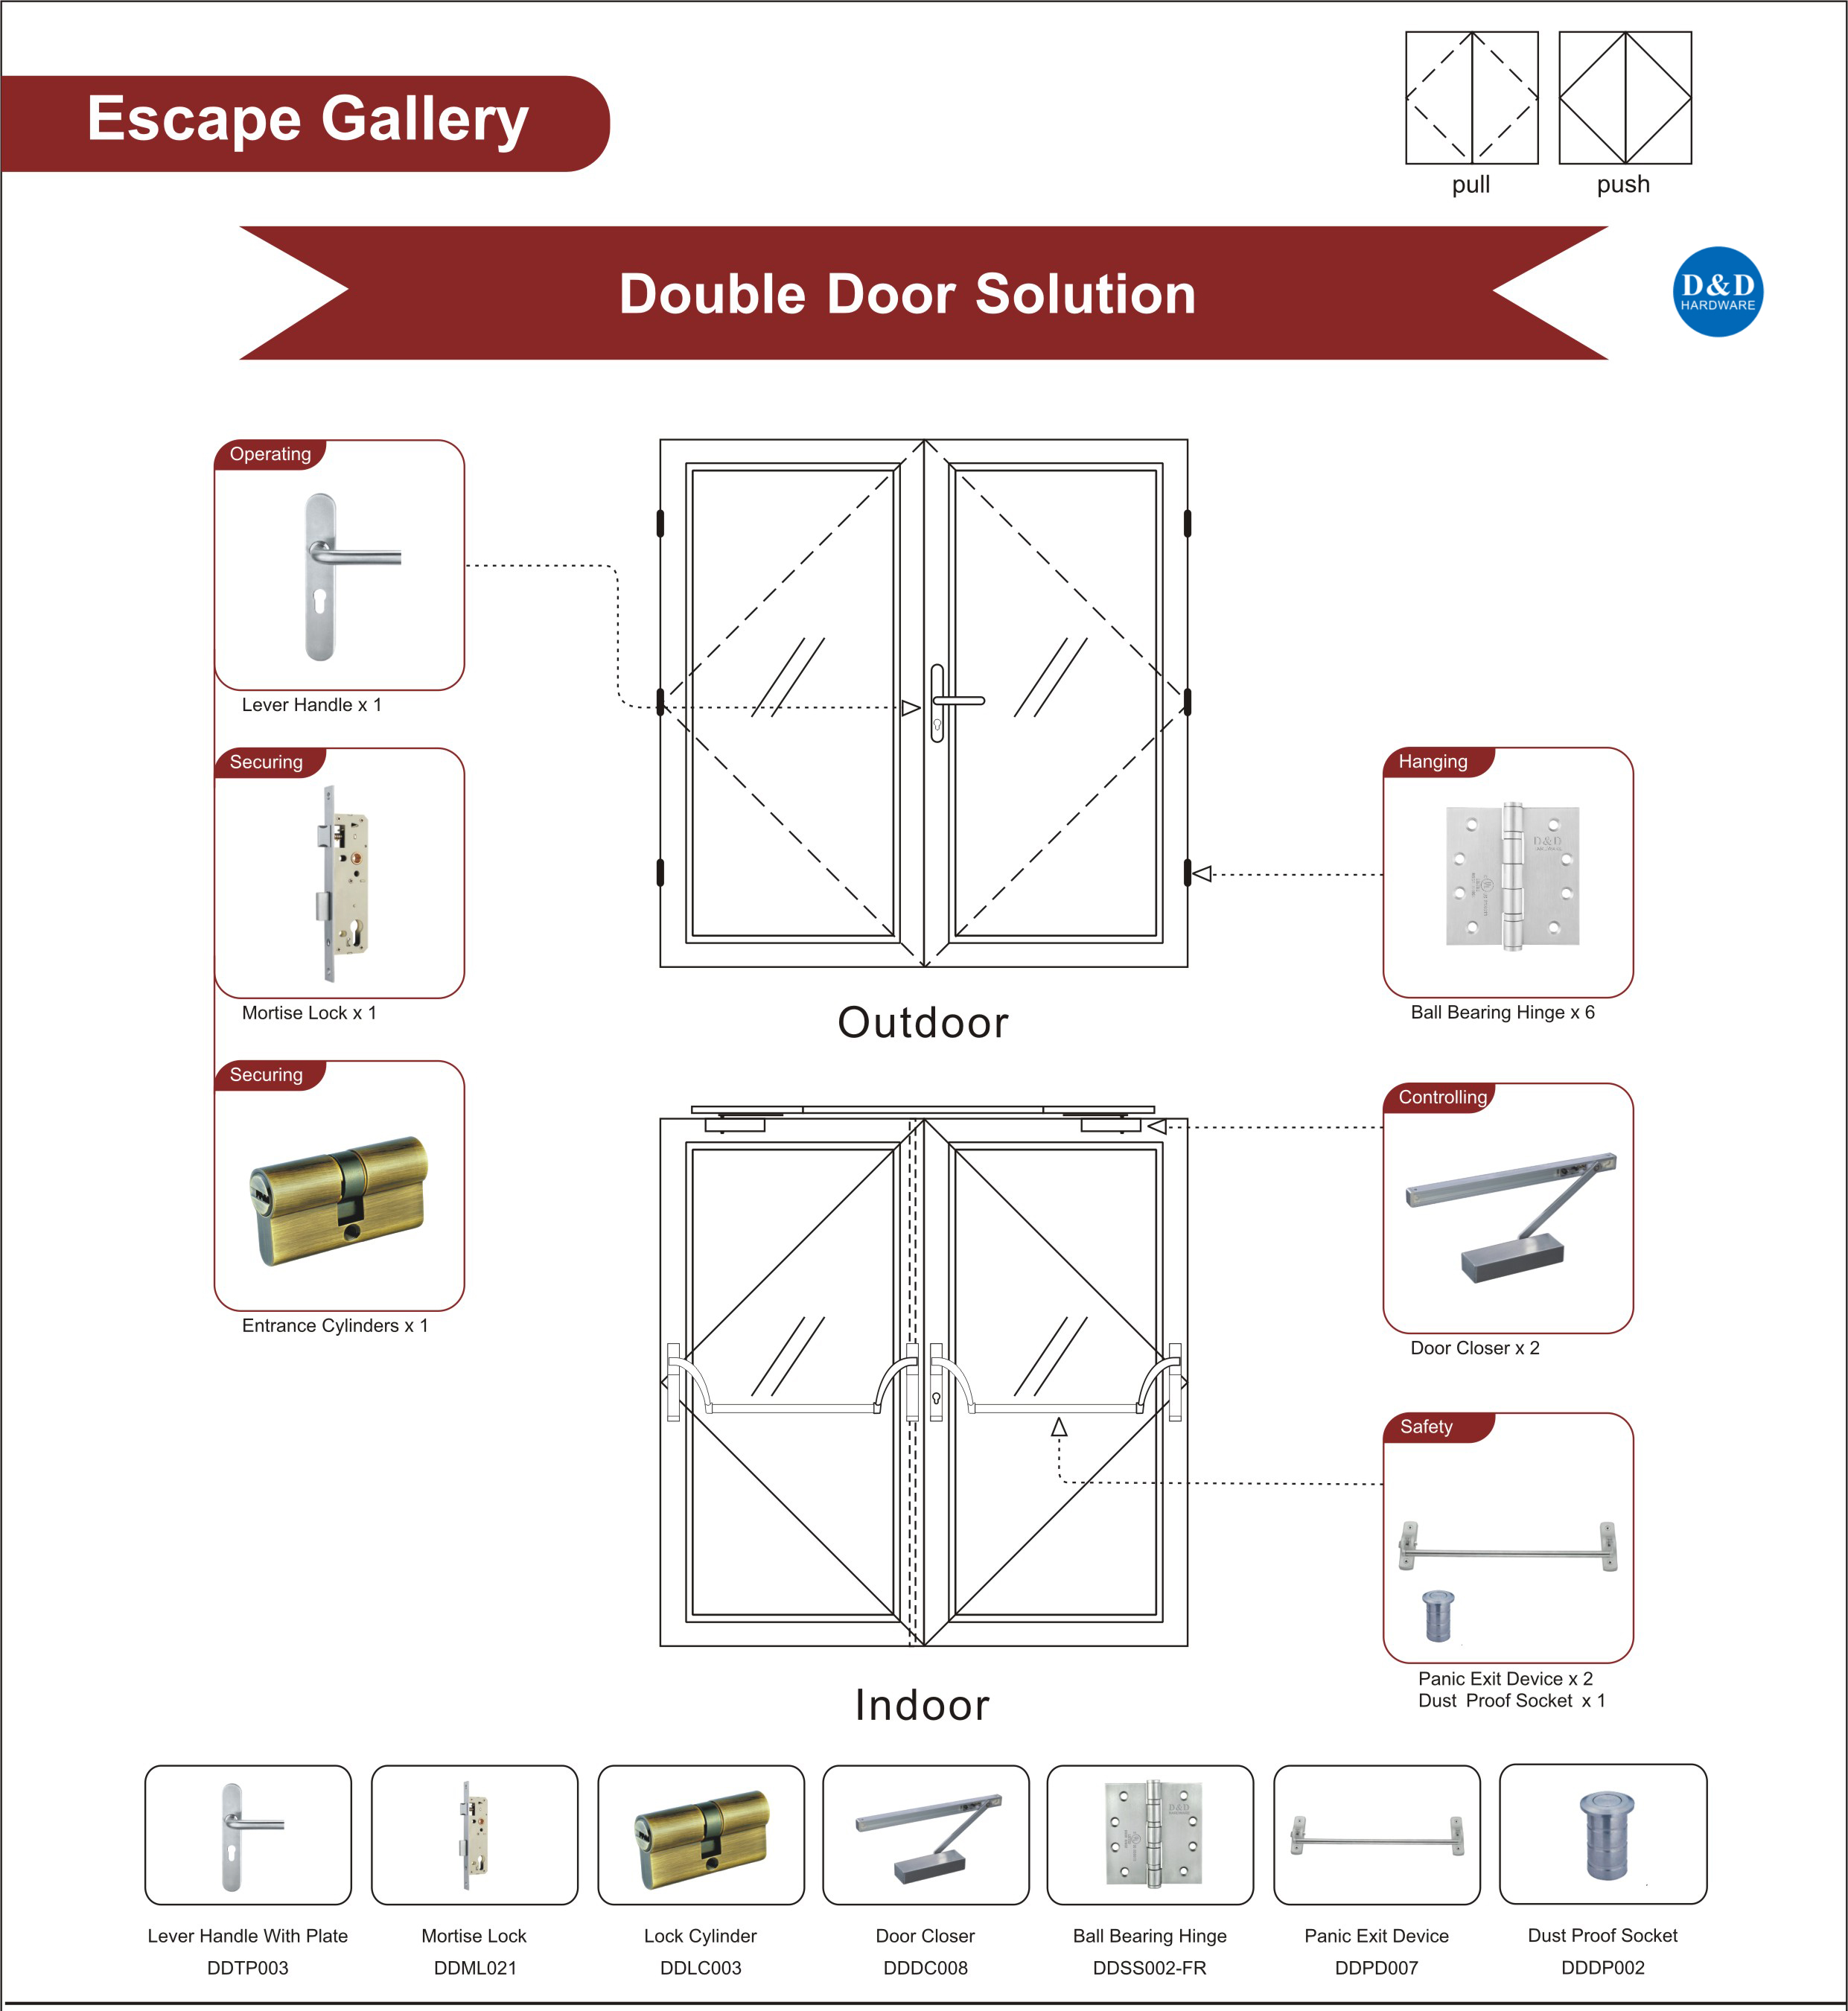 Steel fire rated glass door ironmongery for escape gallery double dd hardware offers a wide range of security door hardware options for the escape gallery that helps the building to solve several safety problems planetlyrics Gallery